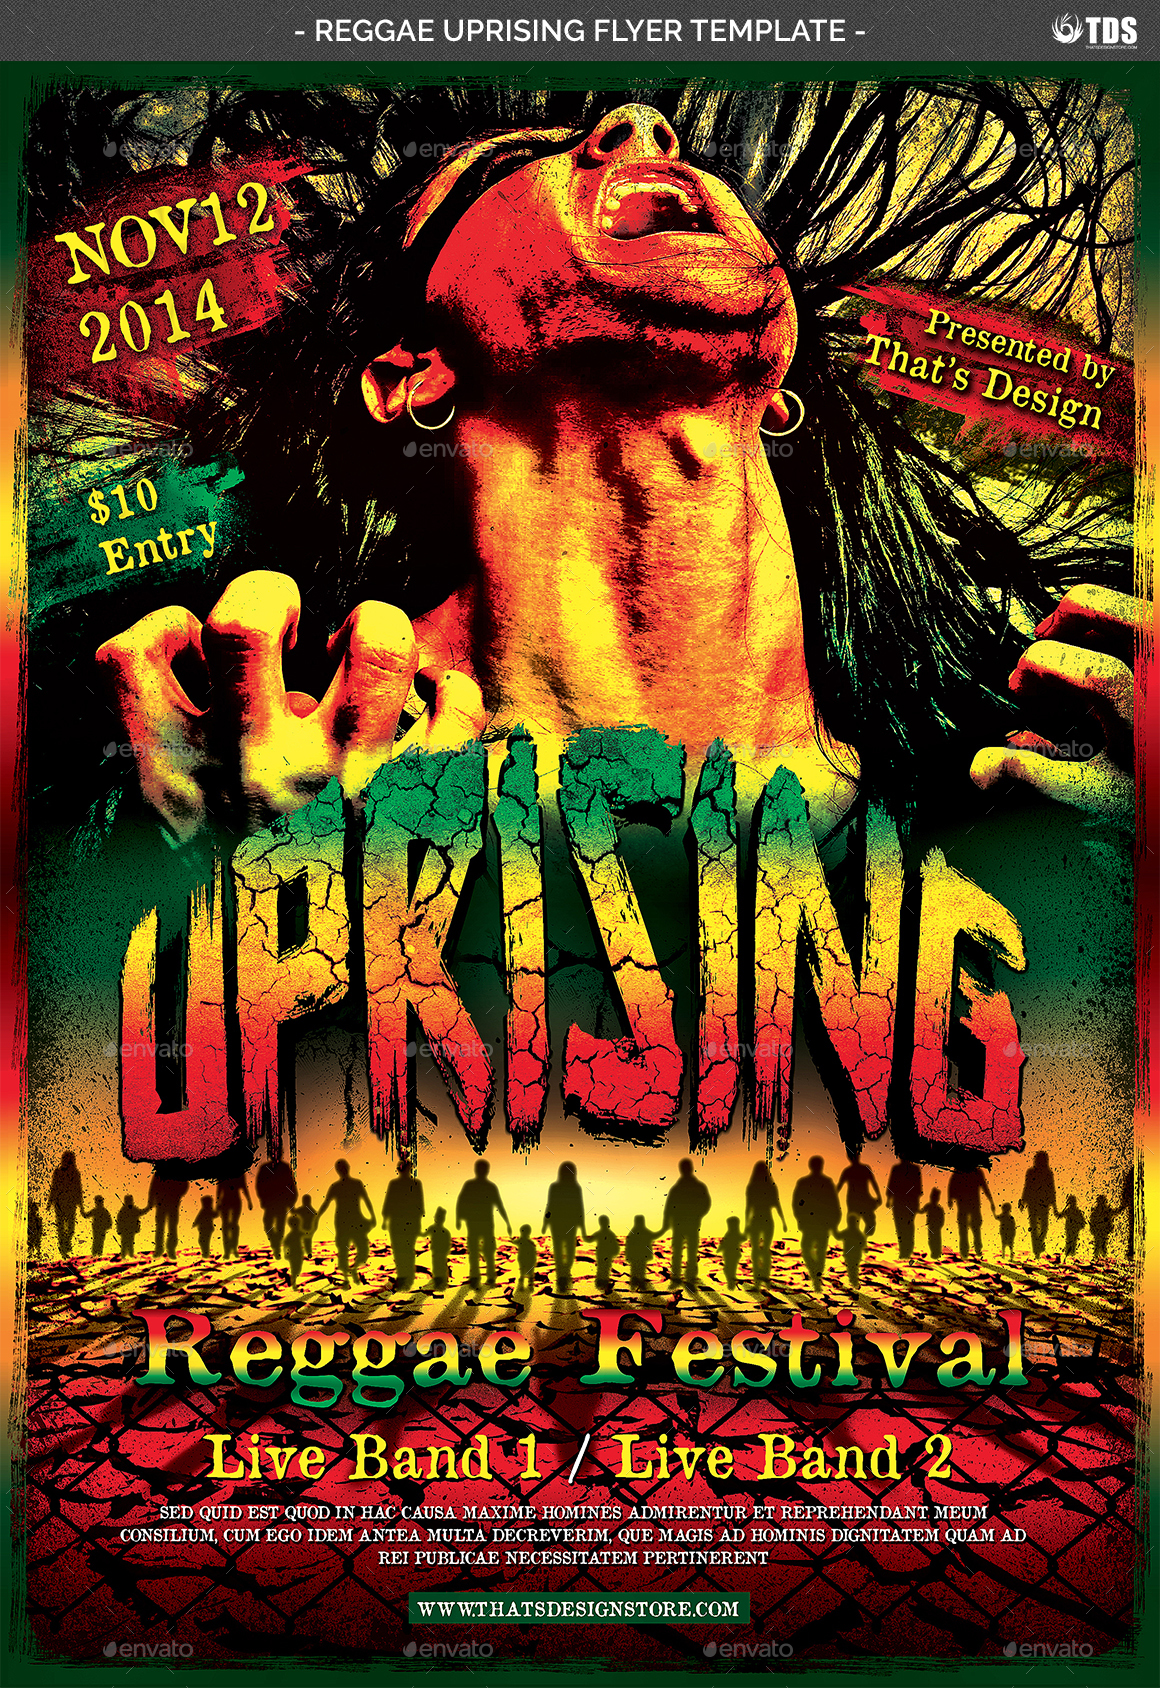 reggae uprising flyer template by lou606